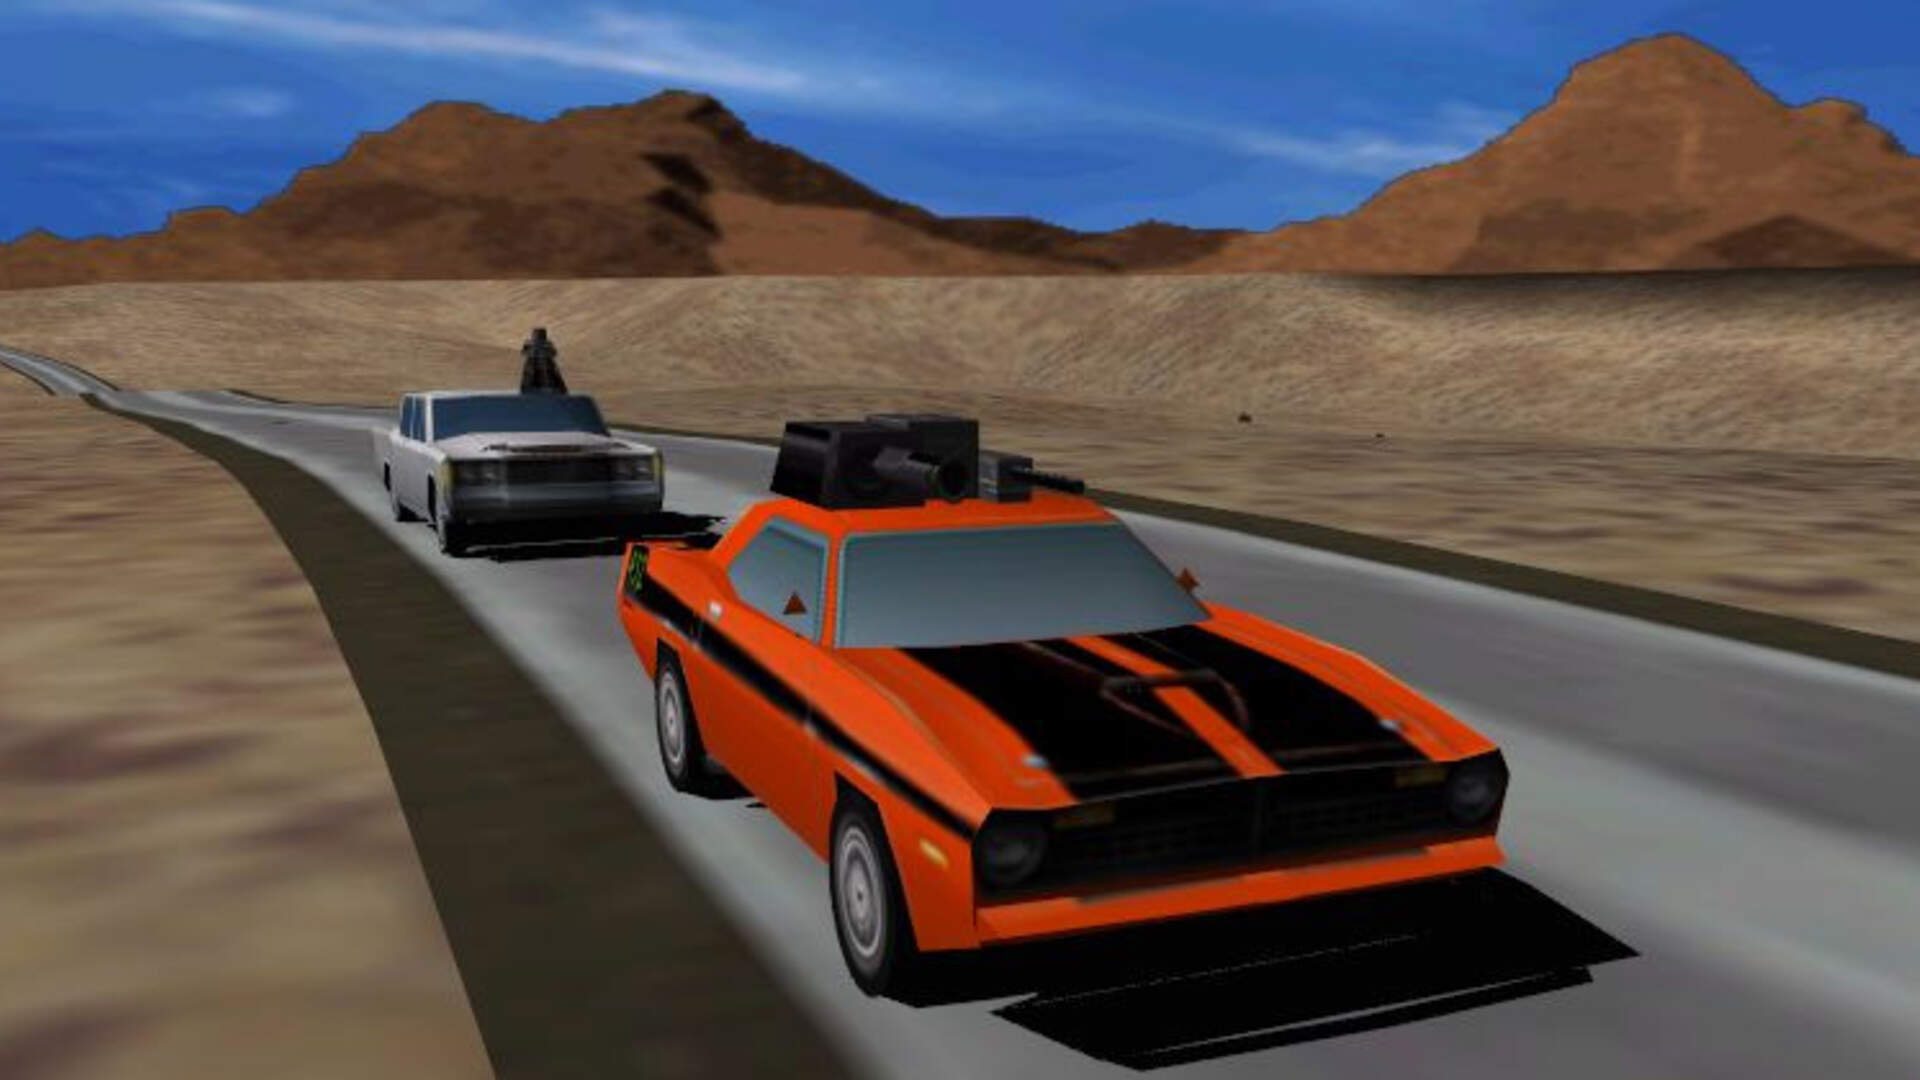 Retronauts Micro Keeps on Truckin' with a Look at Interstate '76